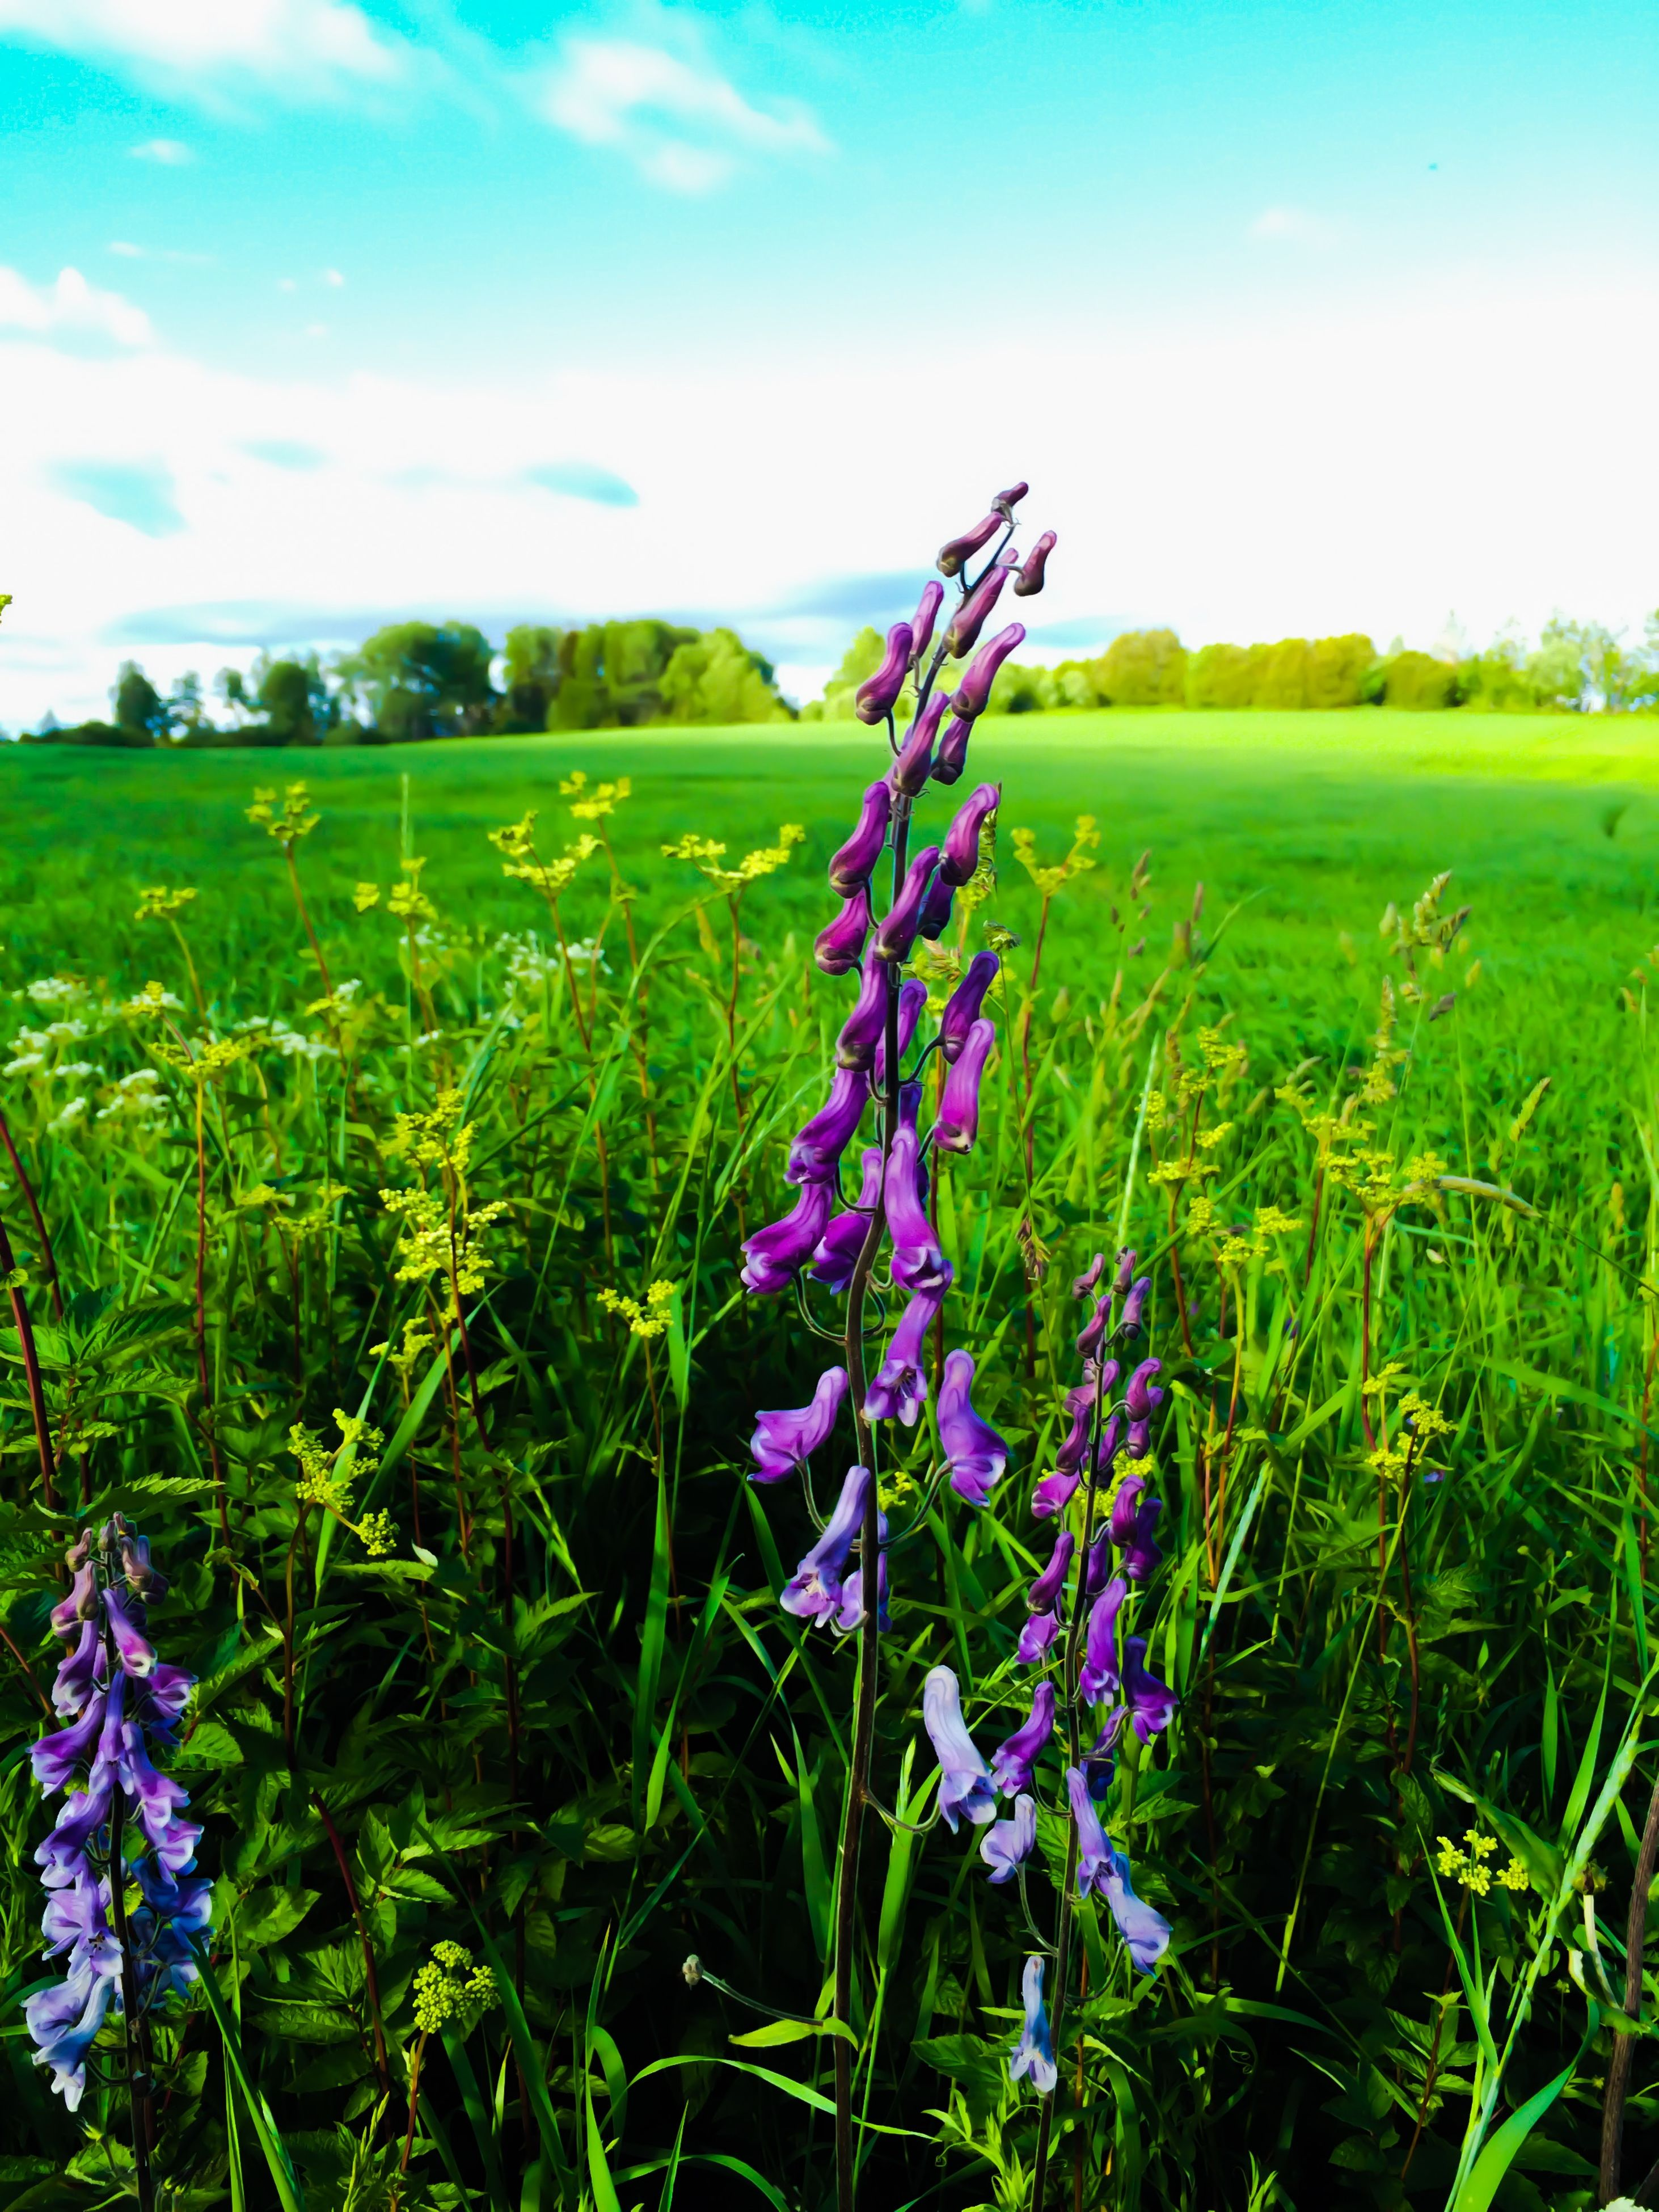 flower, field, growth, purple, landscape, grass, beauty in nature, freshness, nature, plant, rural scene, blue, fragility, tranquility, tranquil scene, sky, agriculture, wildflower, meadow, scenics